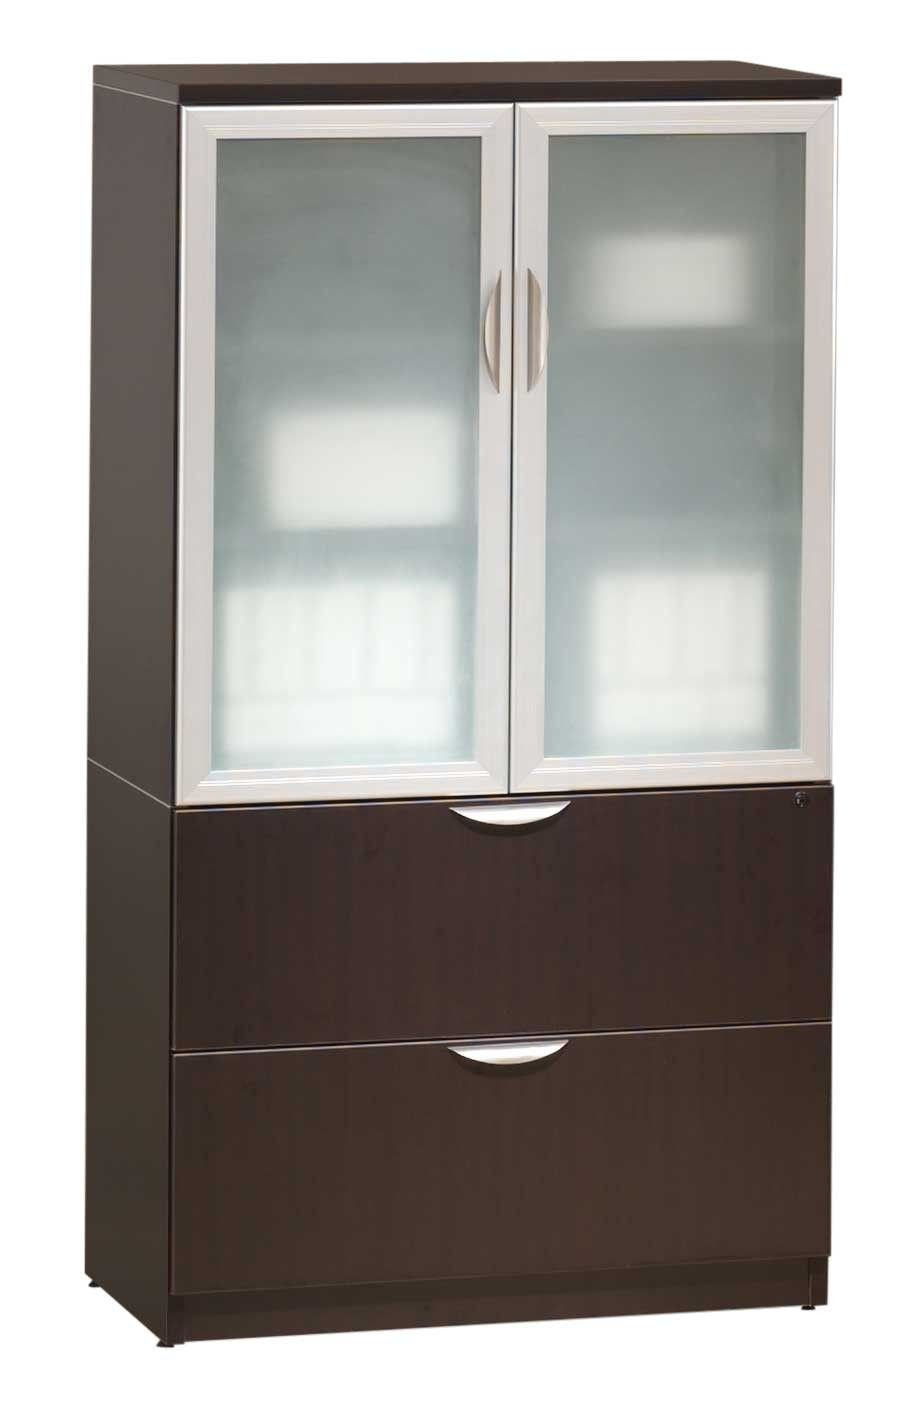 Best Of Homestar 2 Door Glass Storage Cabinet